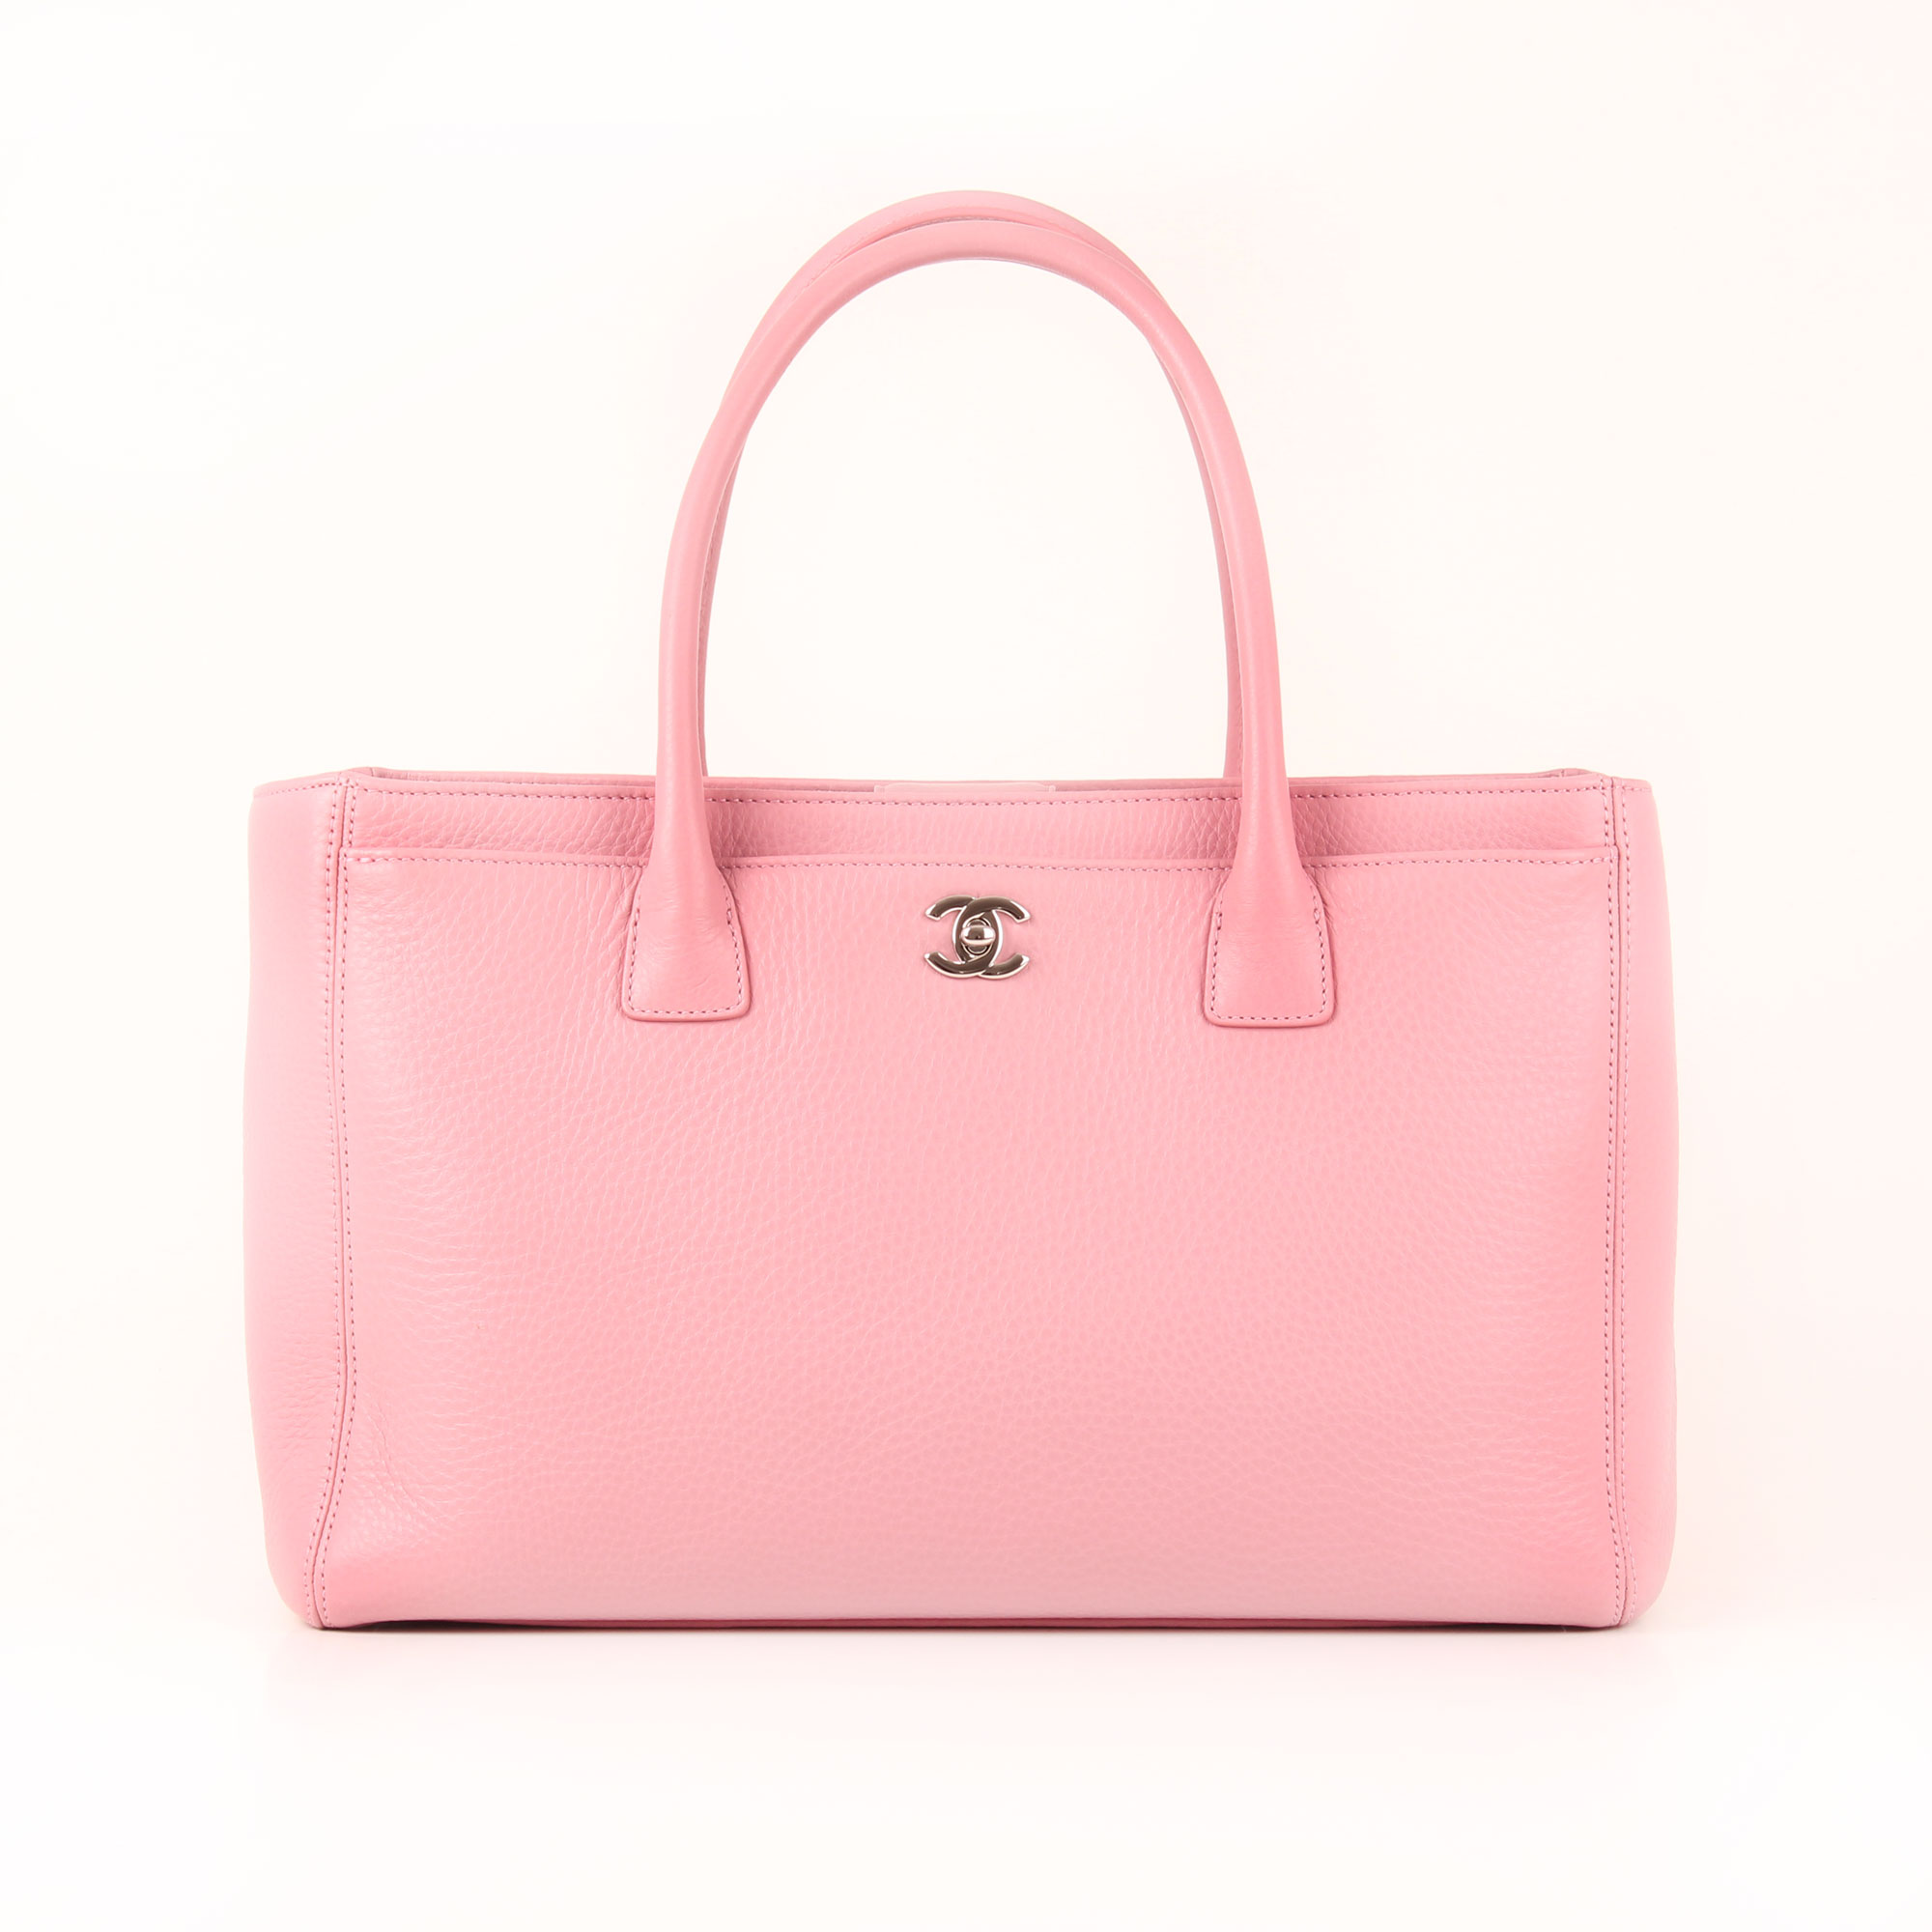 48b5e99128ea Front image from chanel bag cerf tote pink